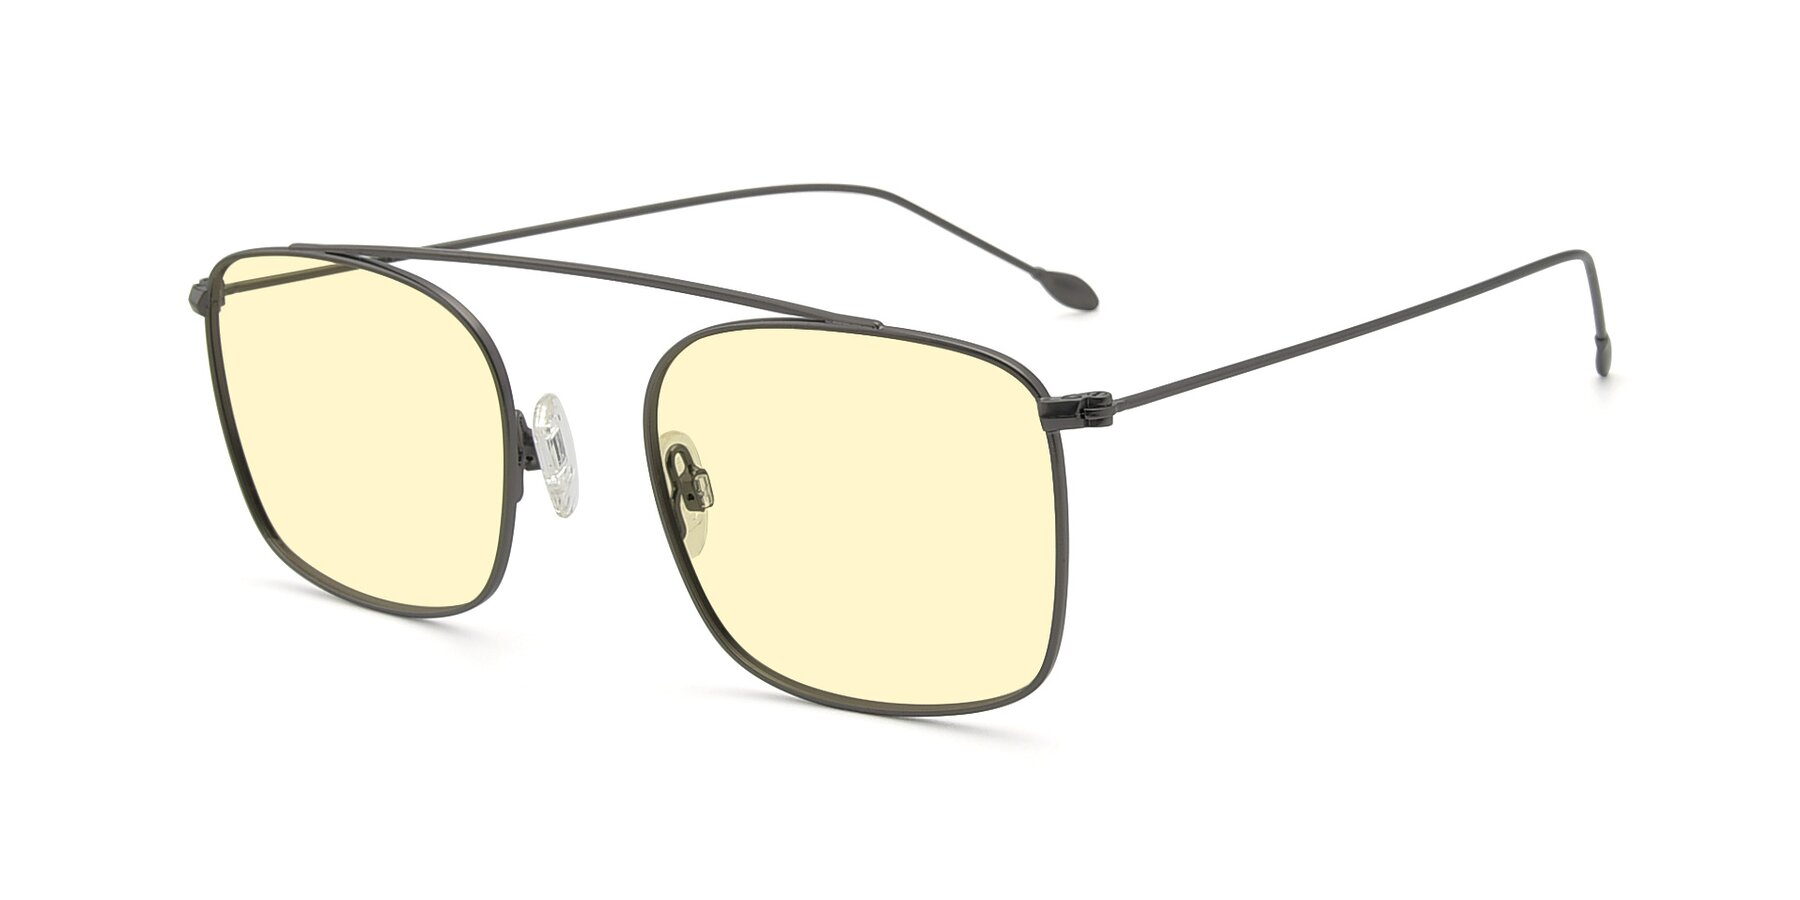 Angle of The Librarian in Gunmetal with Light Yellow Tinted Lenses